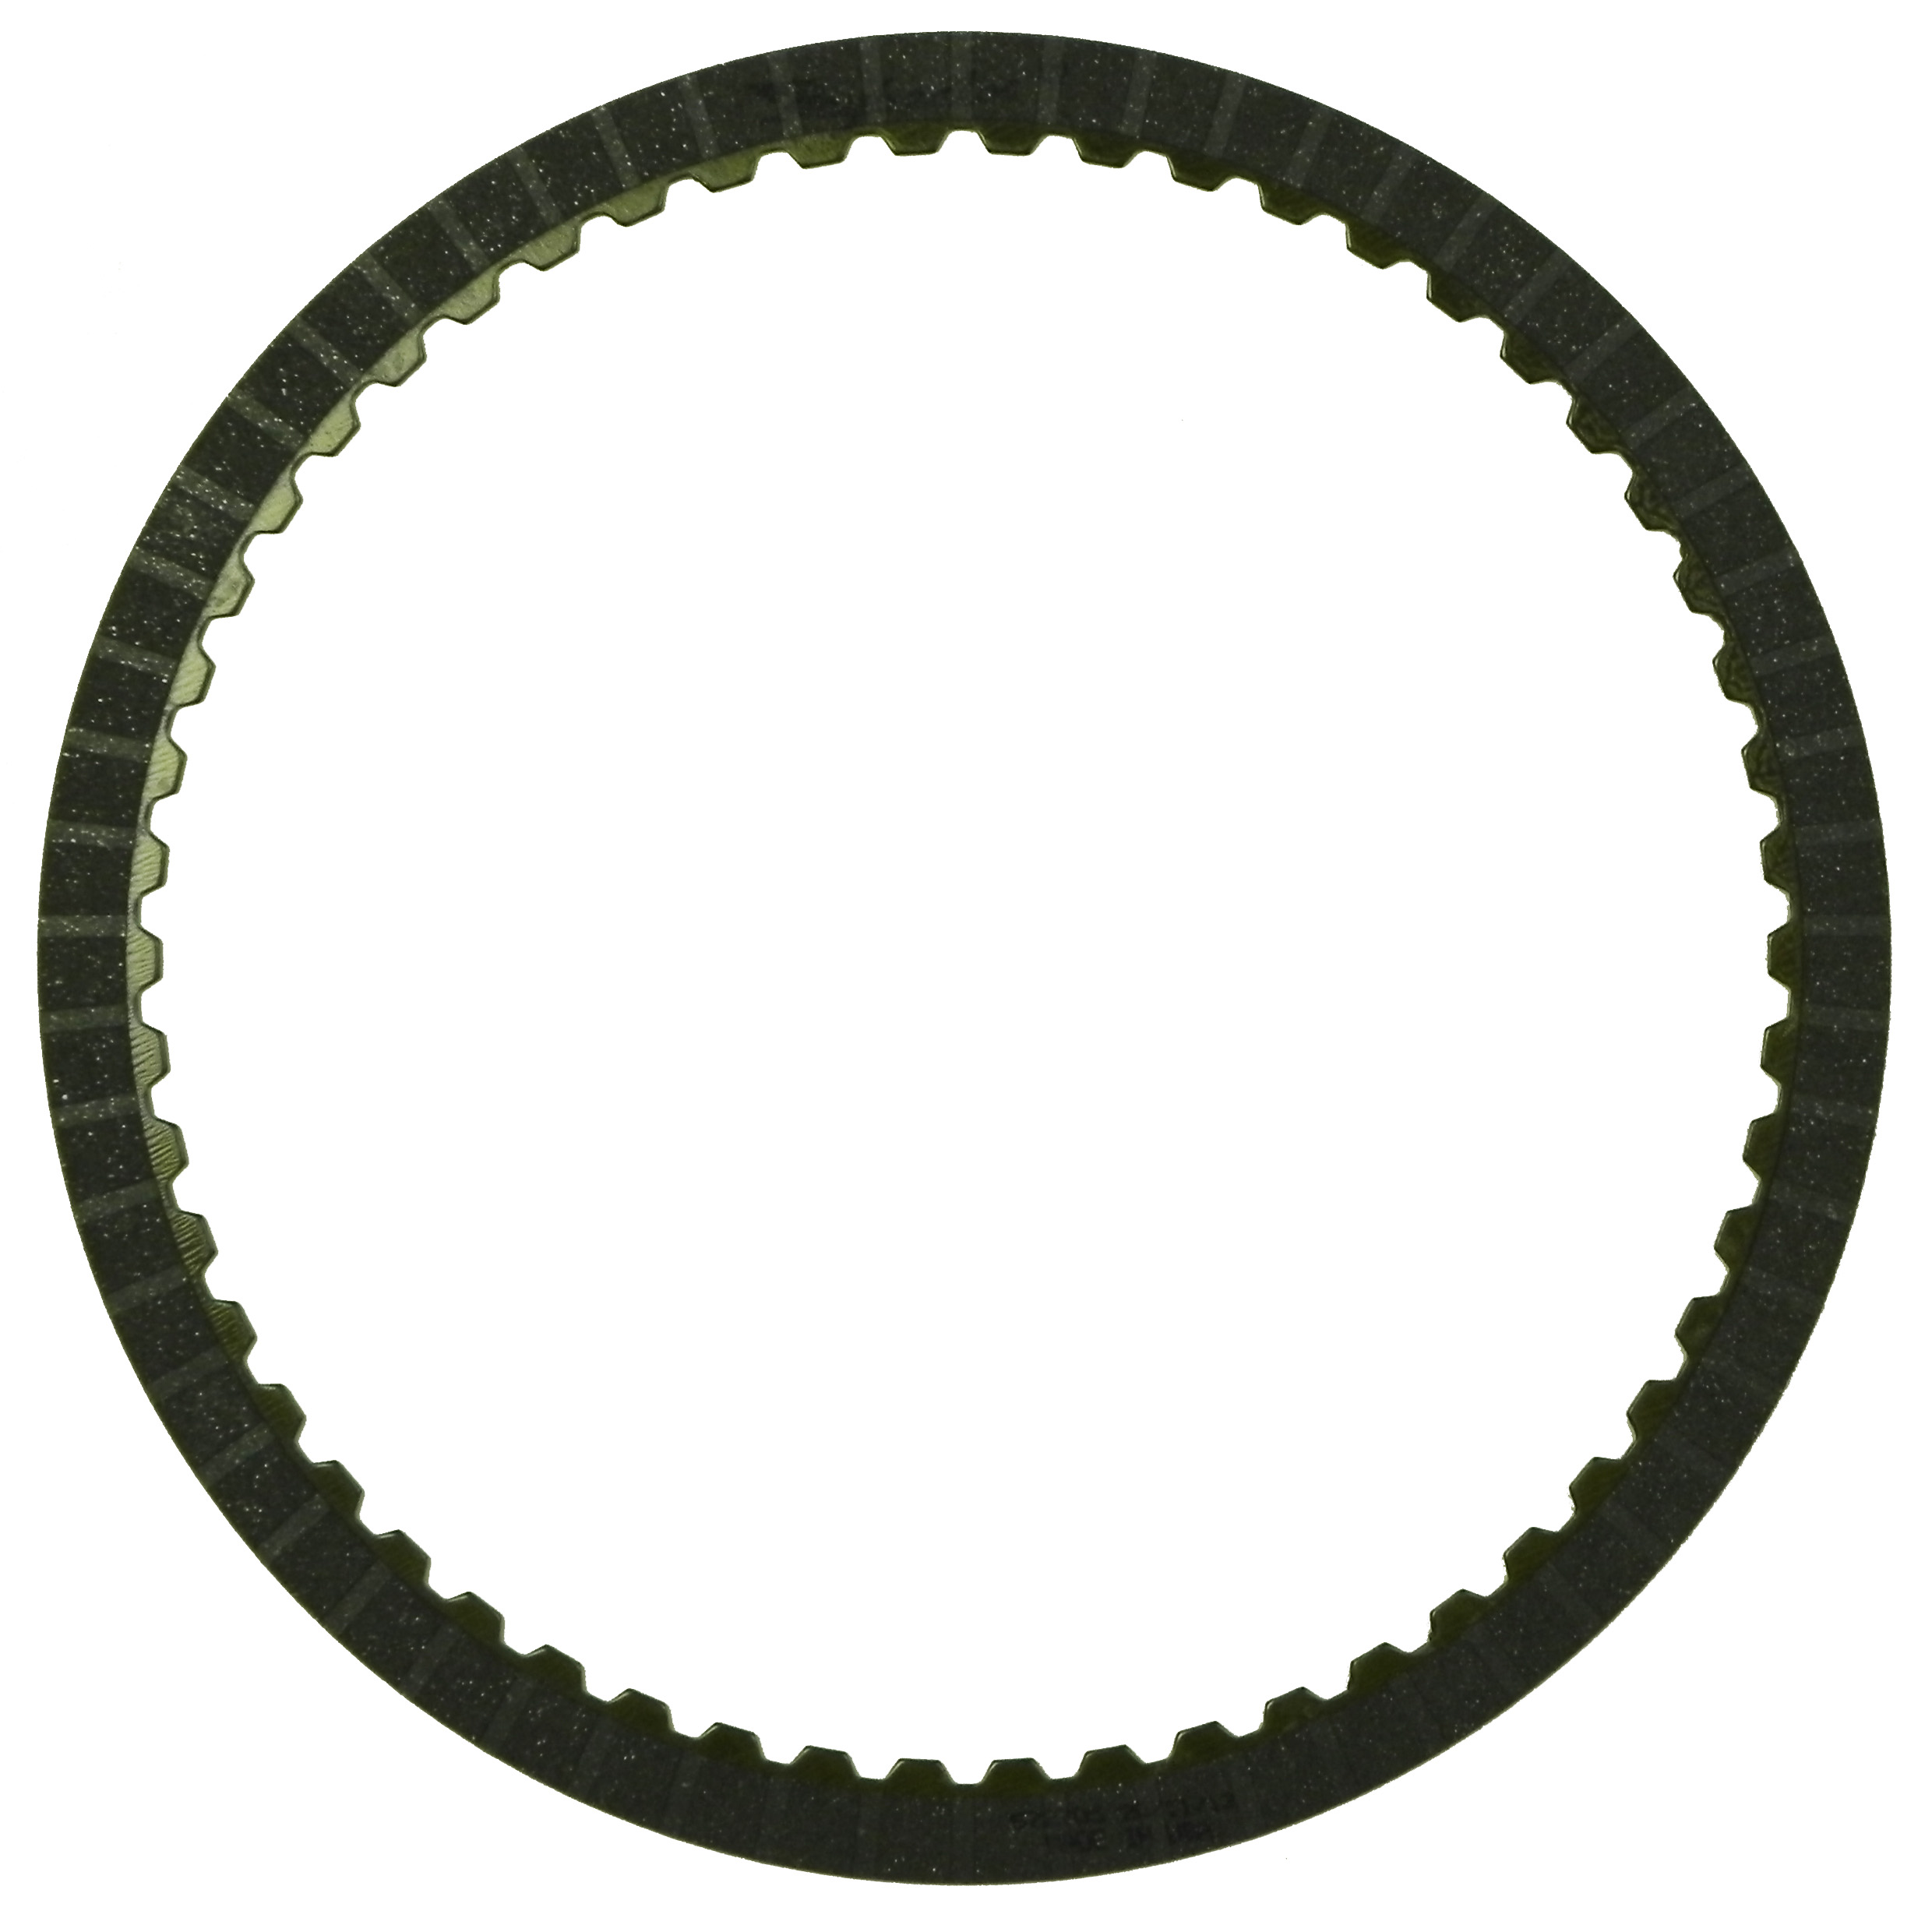 R572705 | 2001-ON Friction Clutch Plate High Energy C1 1, 2, 3, 4 High Energy